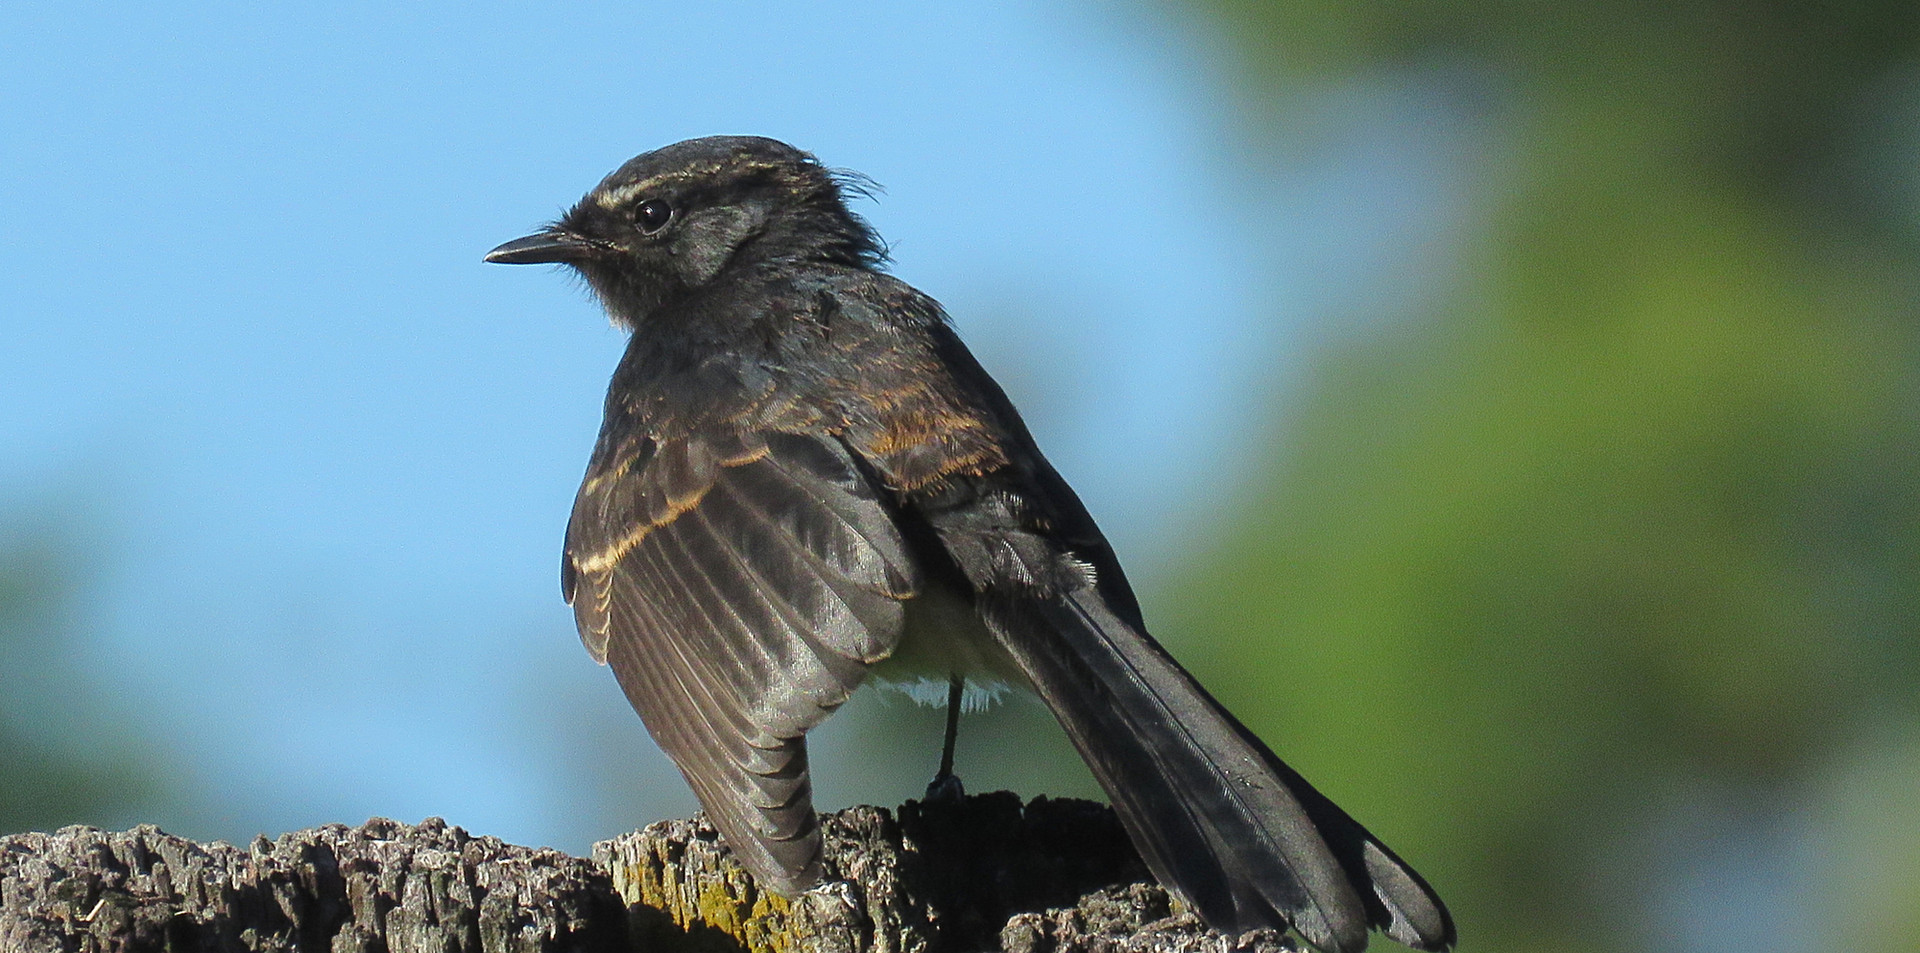 Juvenile Willie Wagtail